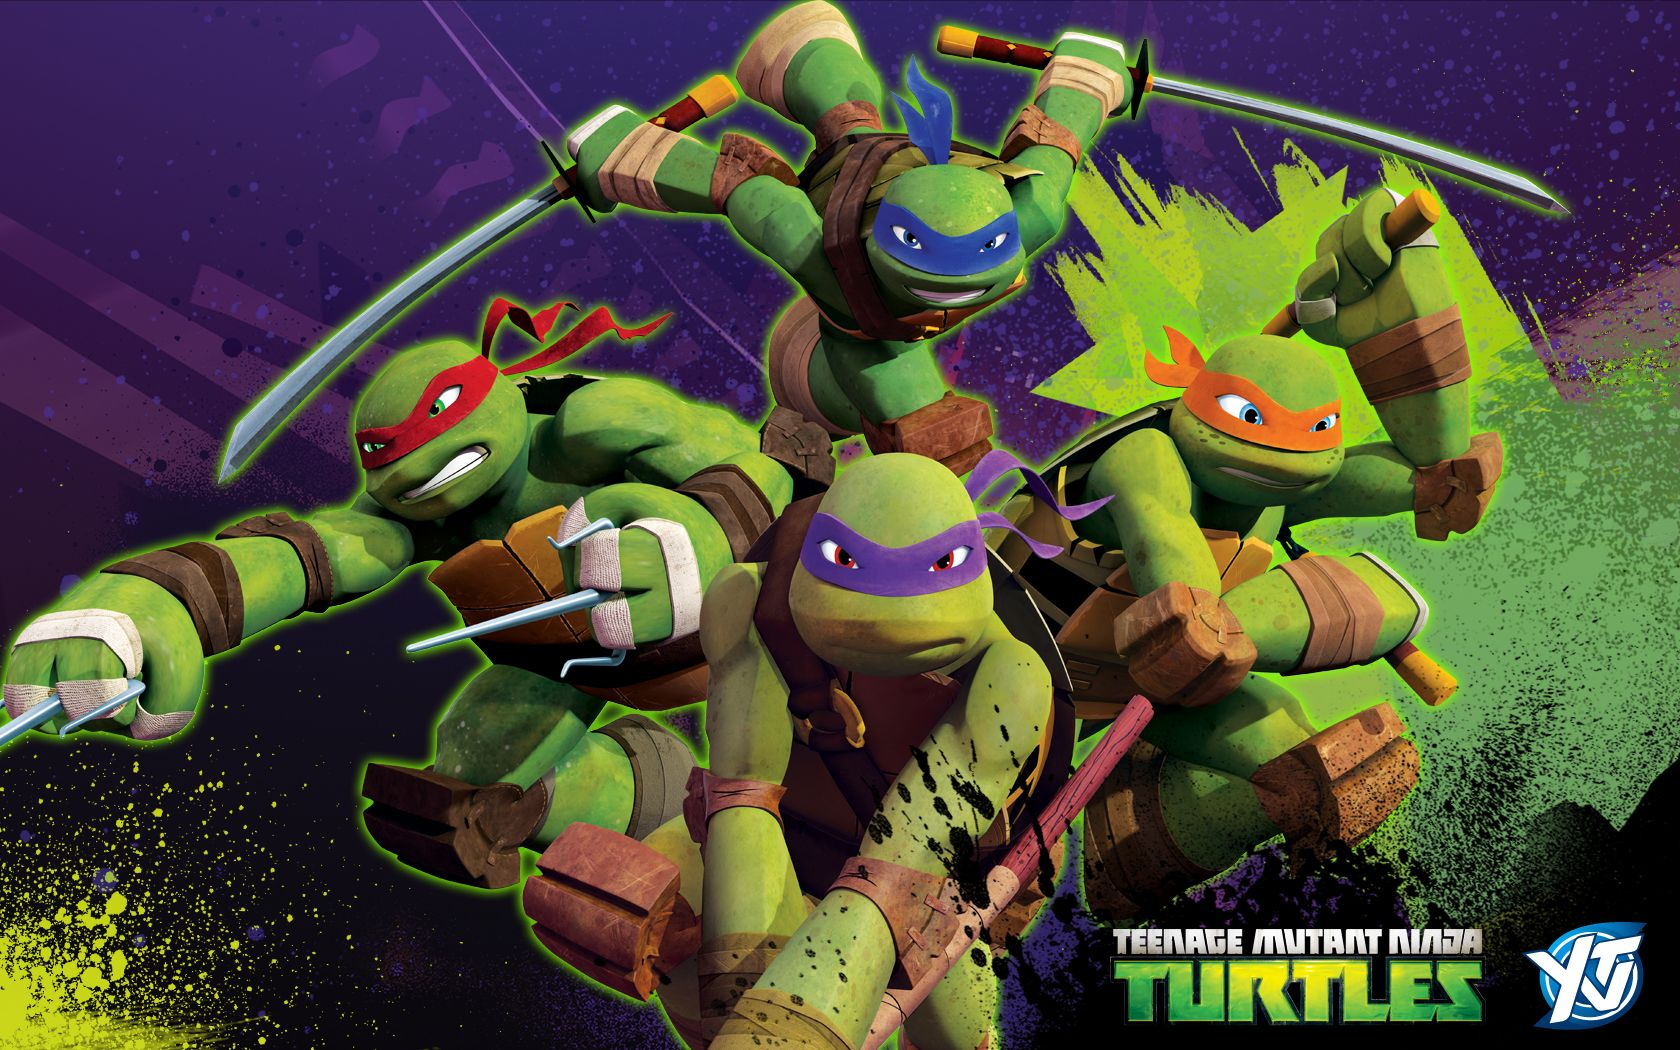 teenage mutant ninja turtles wallpaper wallpaperesque | hd